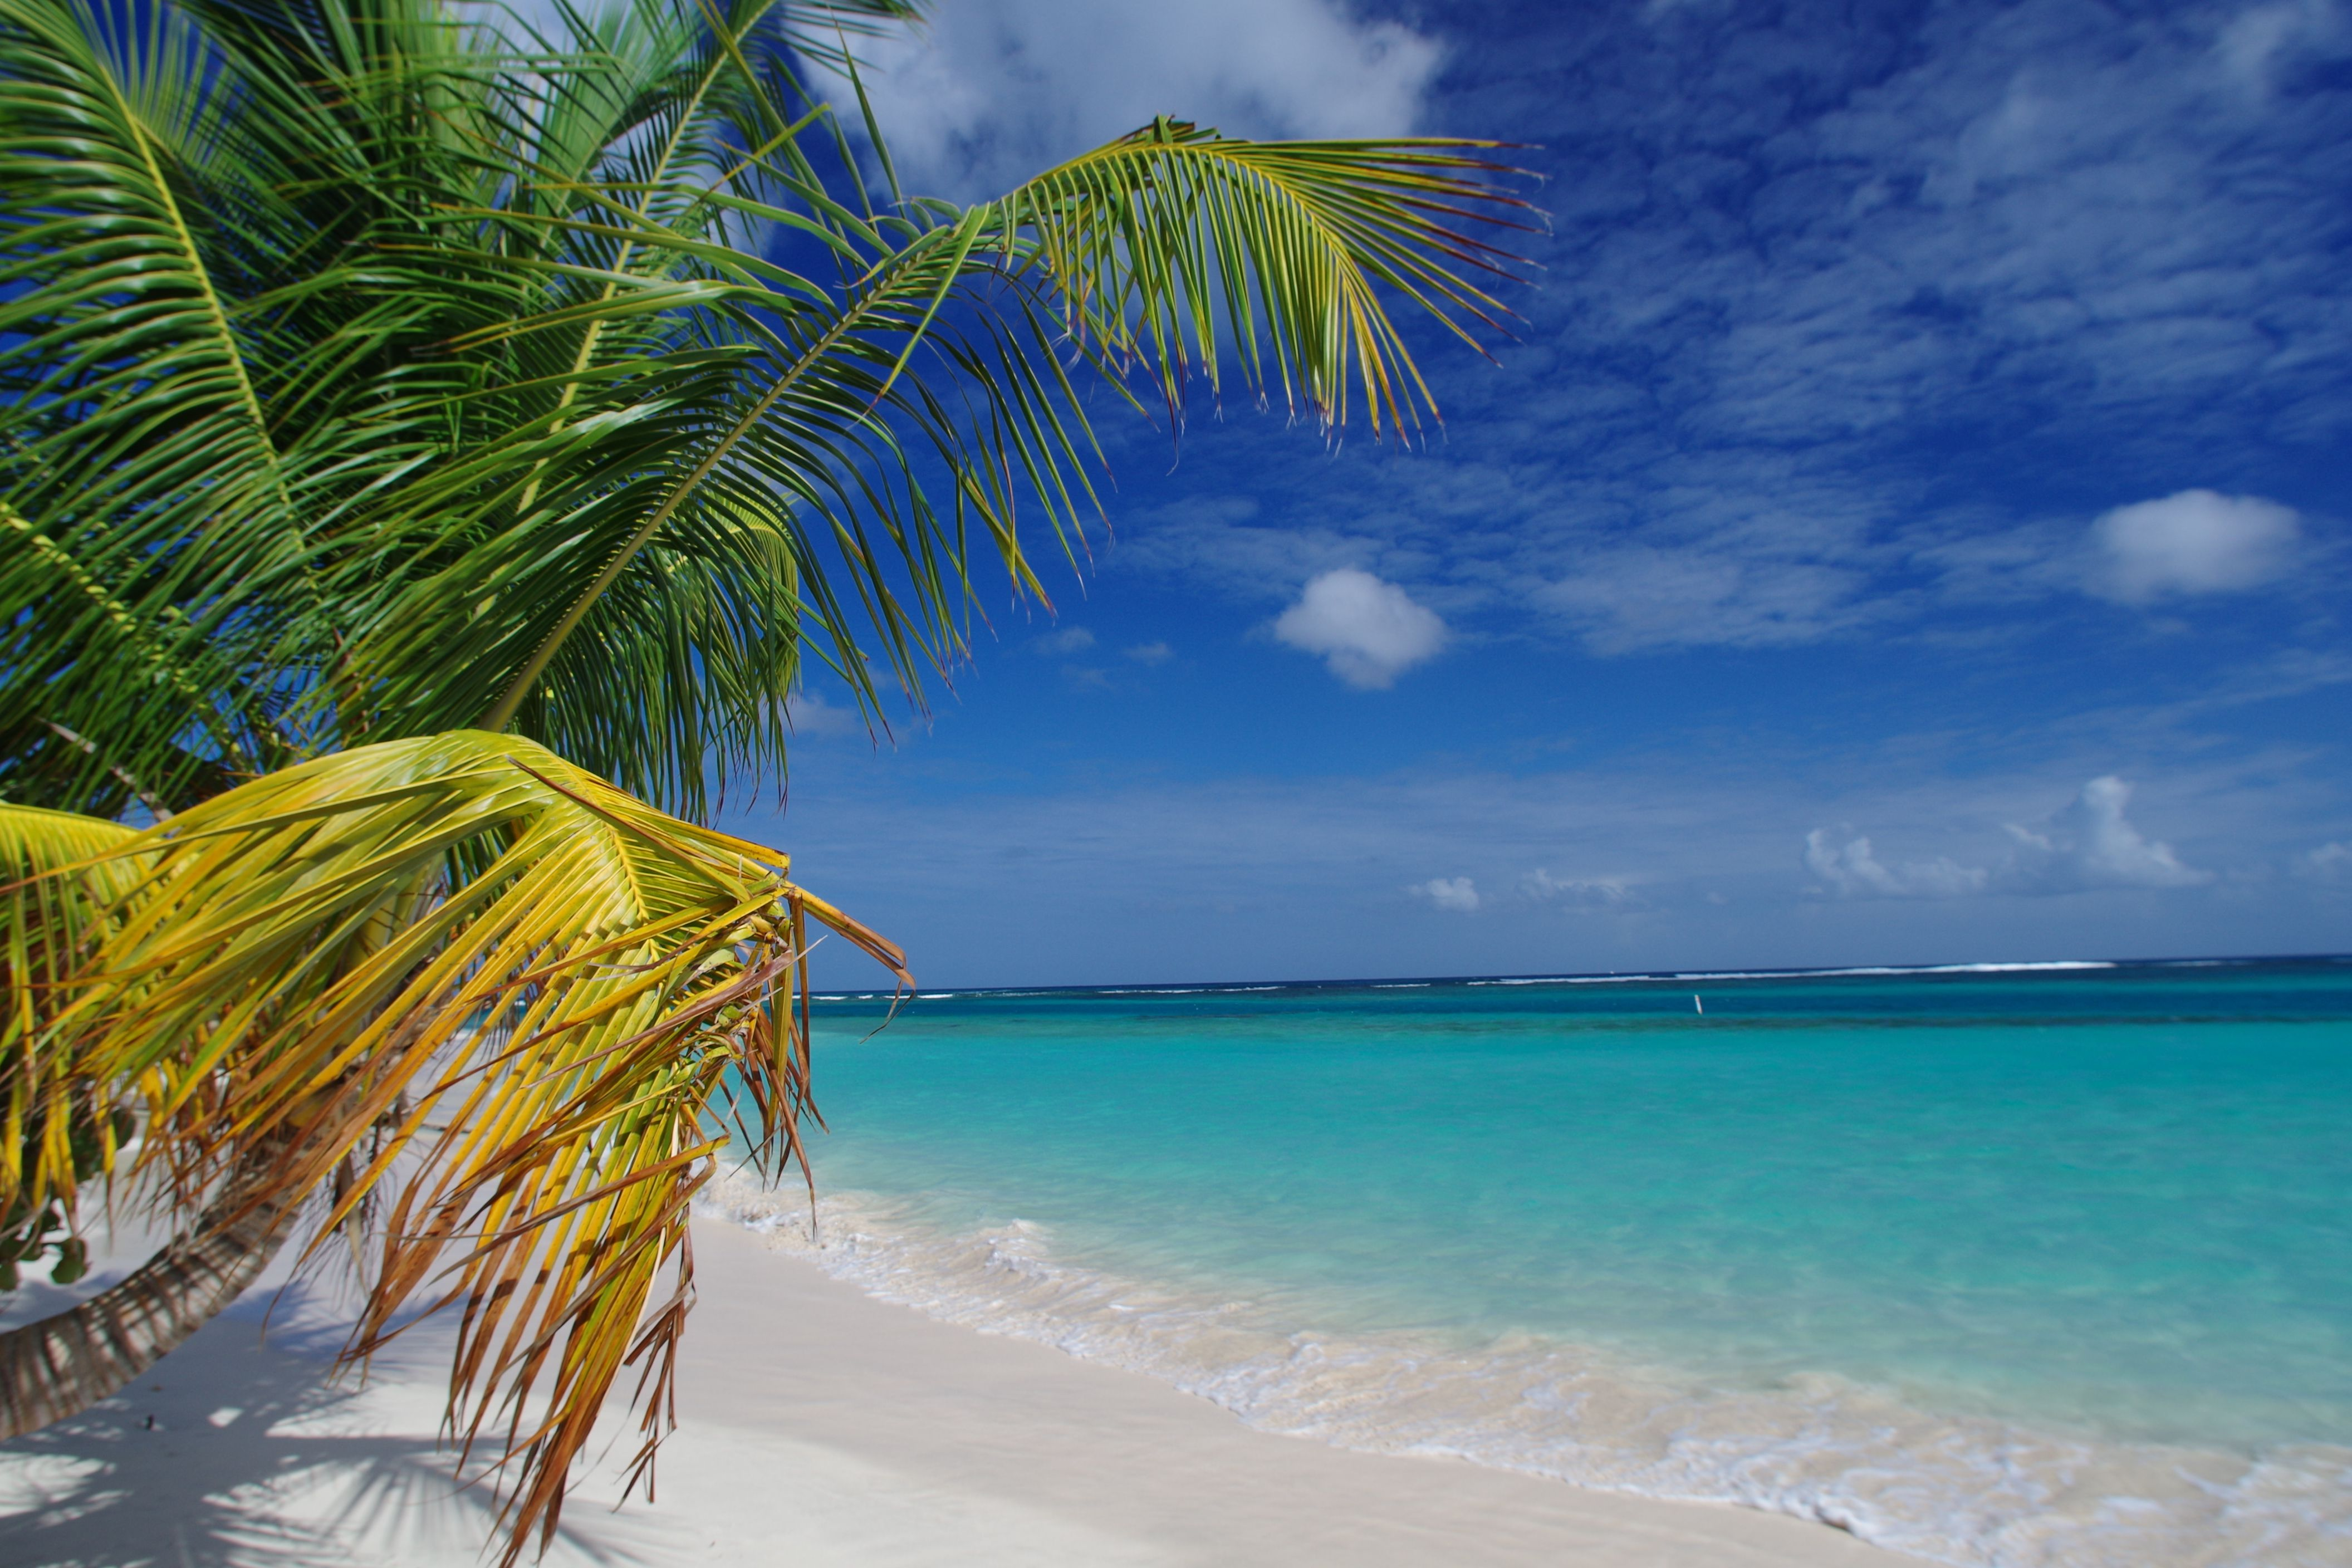 Flamenco Beach might just be the most beautiful beach in Puerto Rico